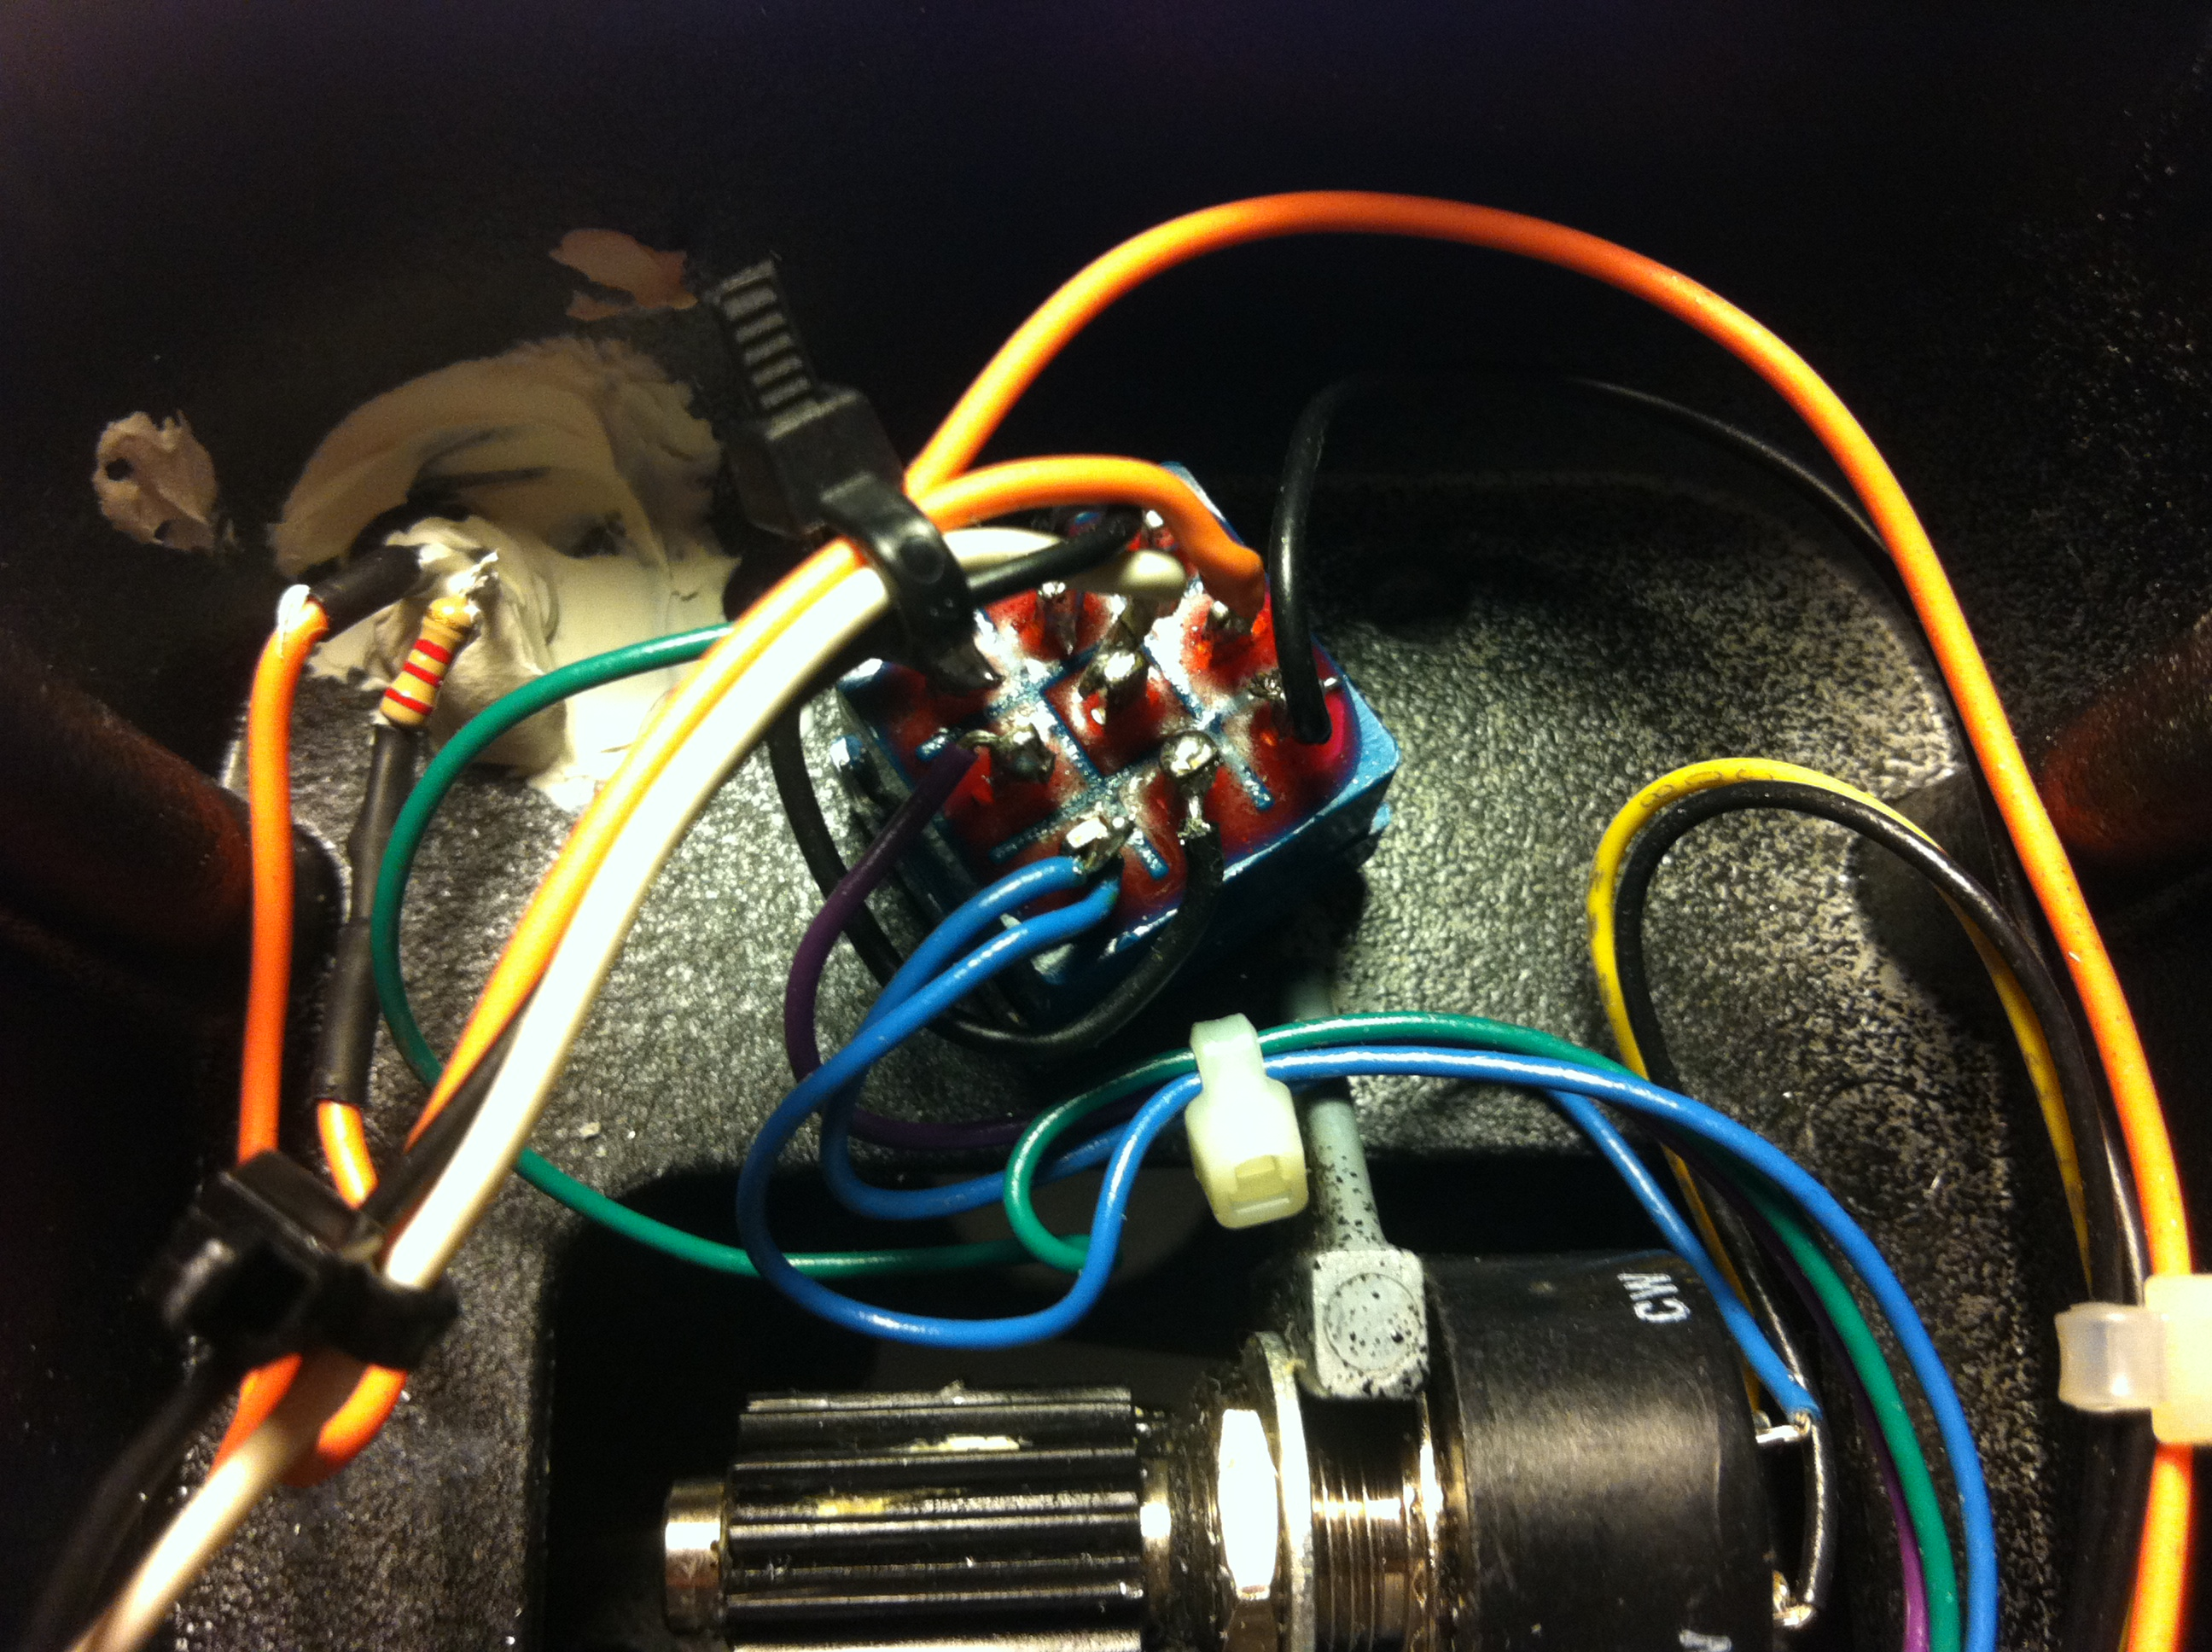 Convert Crybaby Wah Pedal To True Bypass Daniele Turani Schematic Also Original Wiring Diagrams On 3pdt Switch Installed